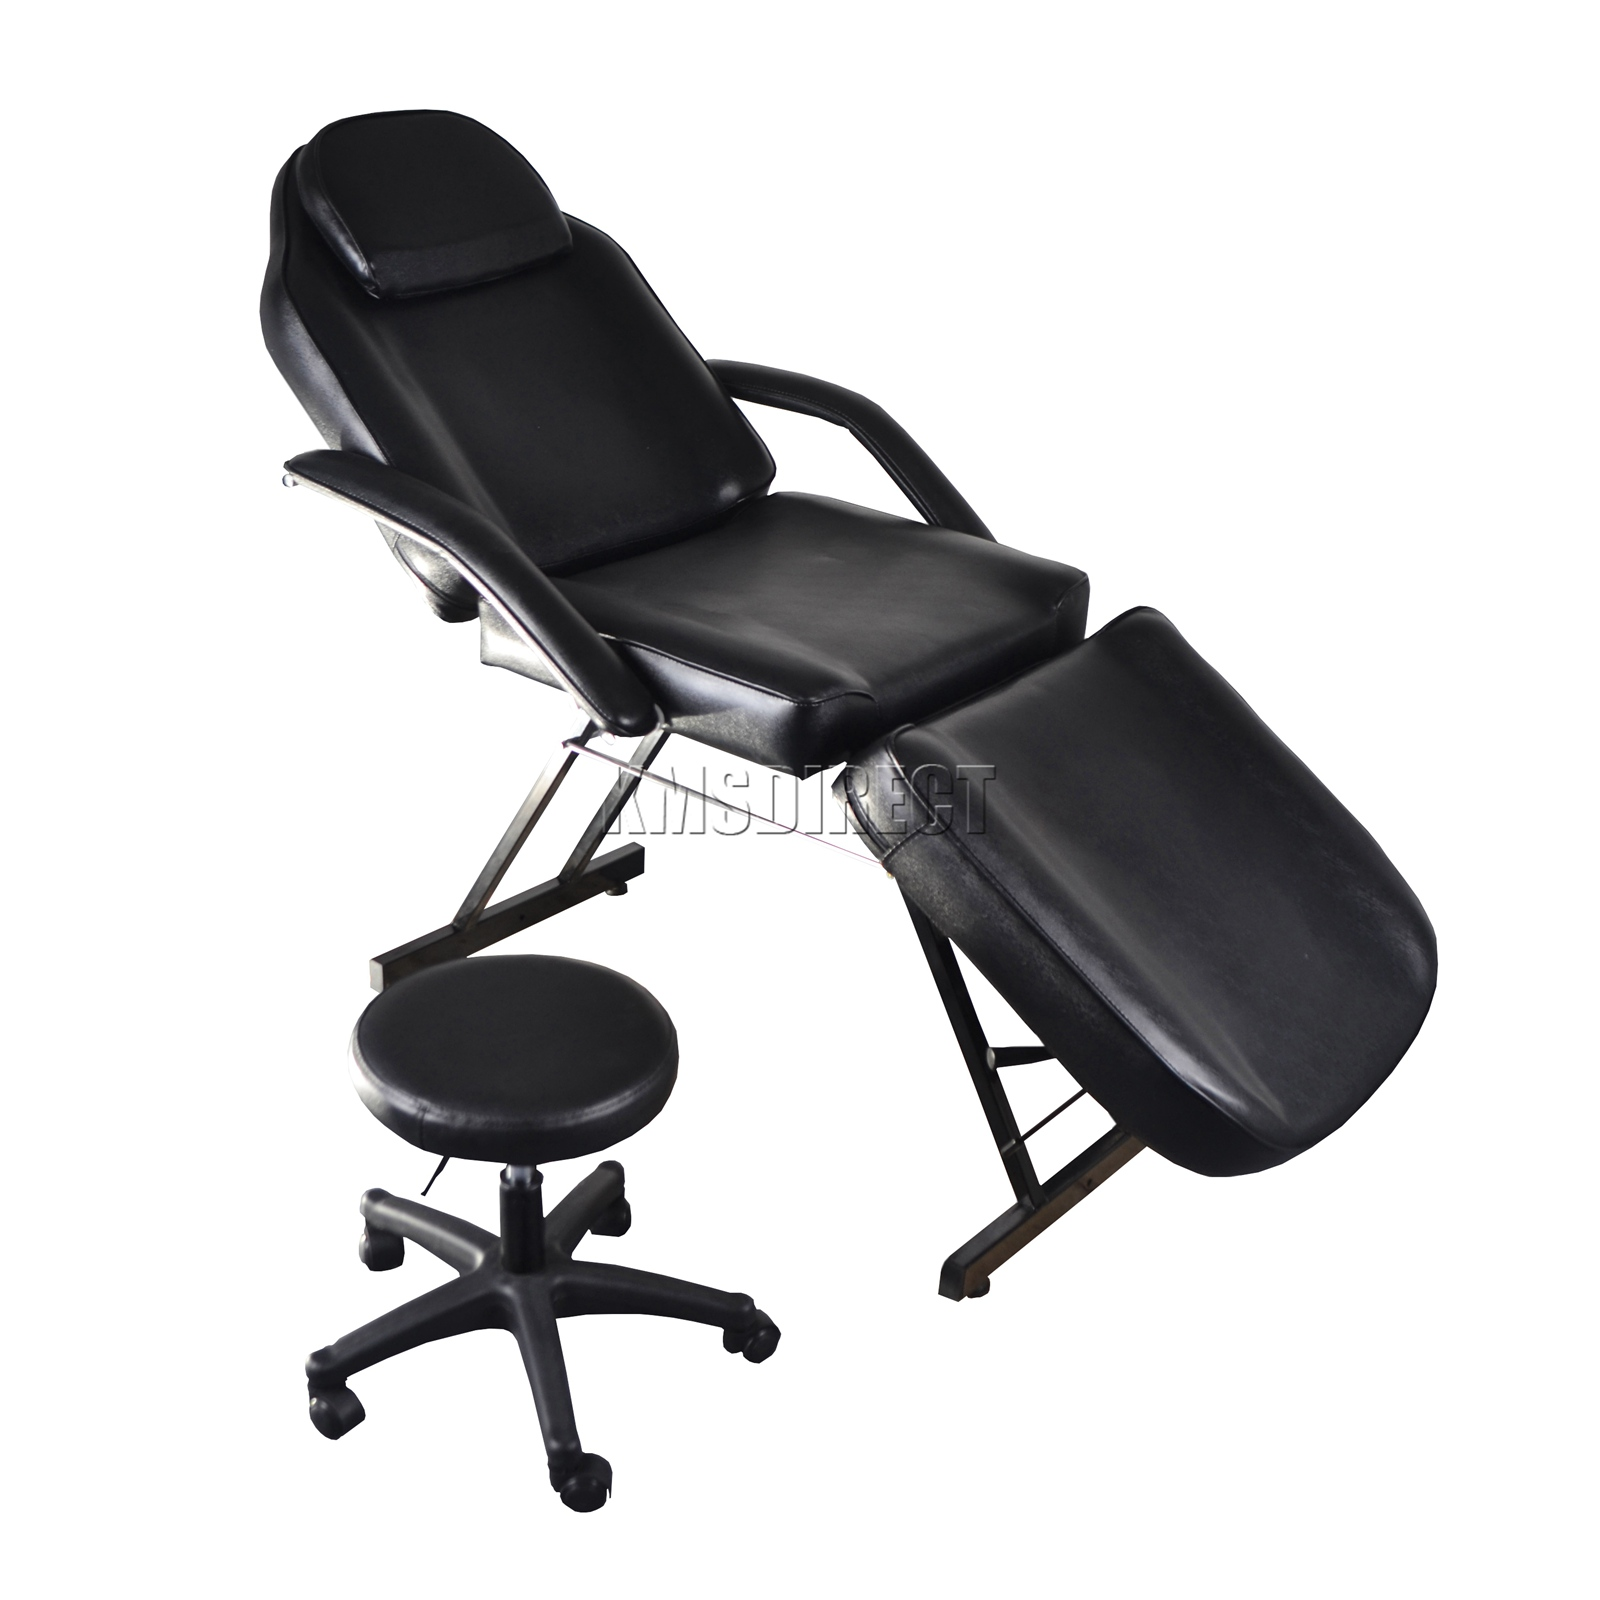 beauty salon chair design whale westwood bed stool included massage table details about tattoo therapy